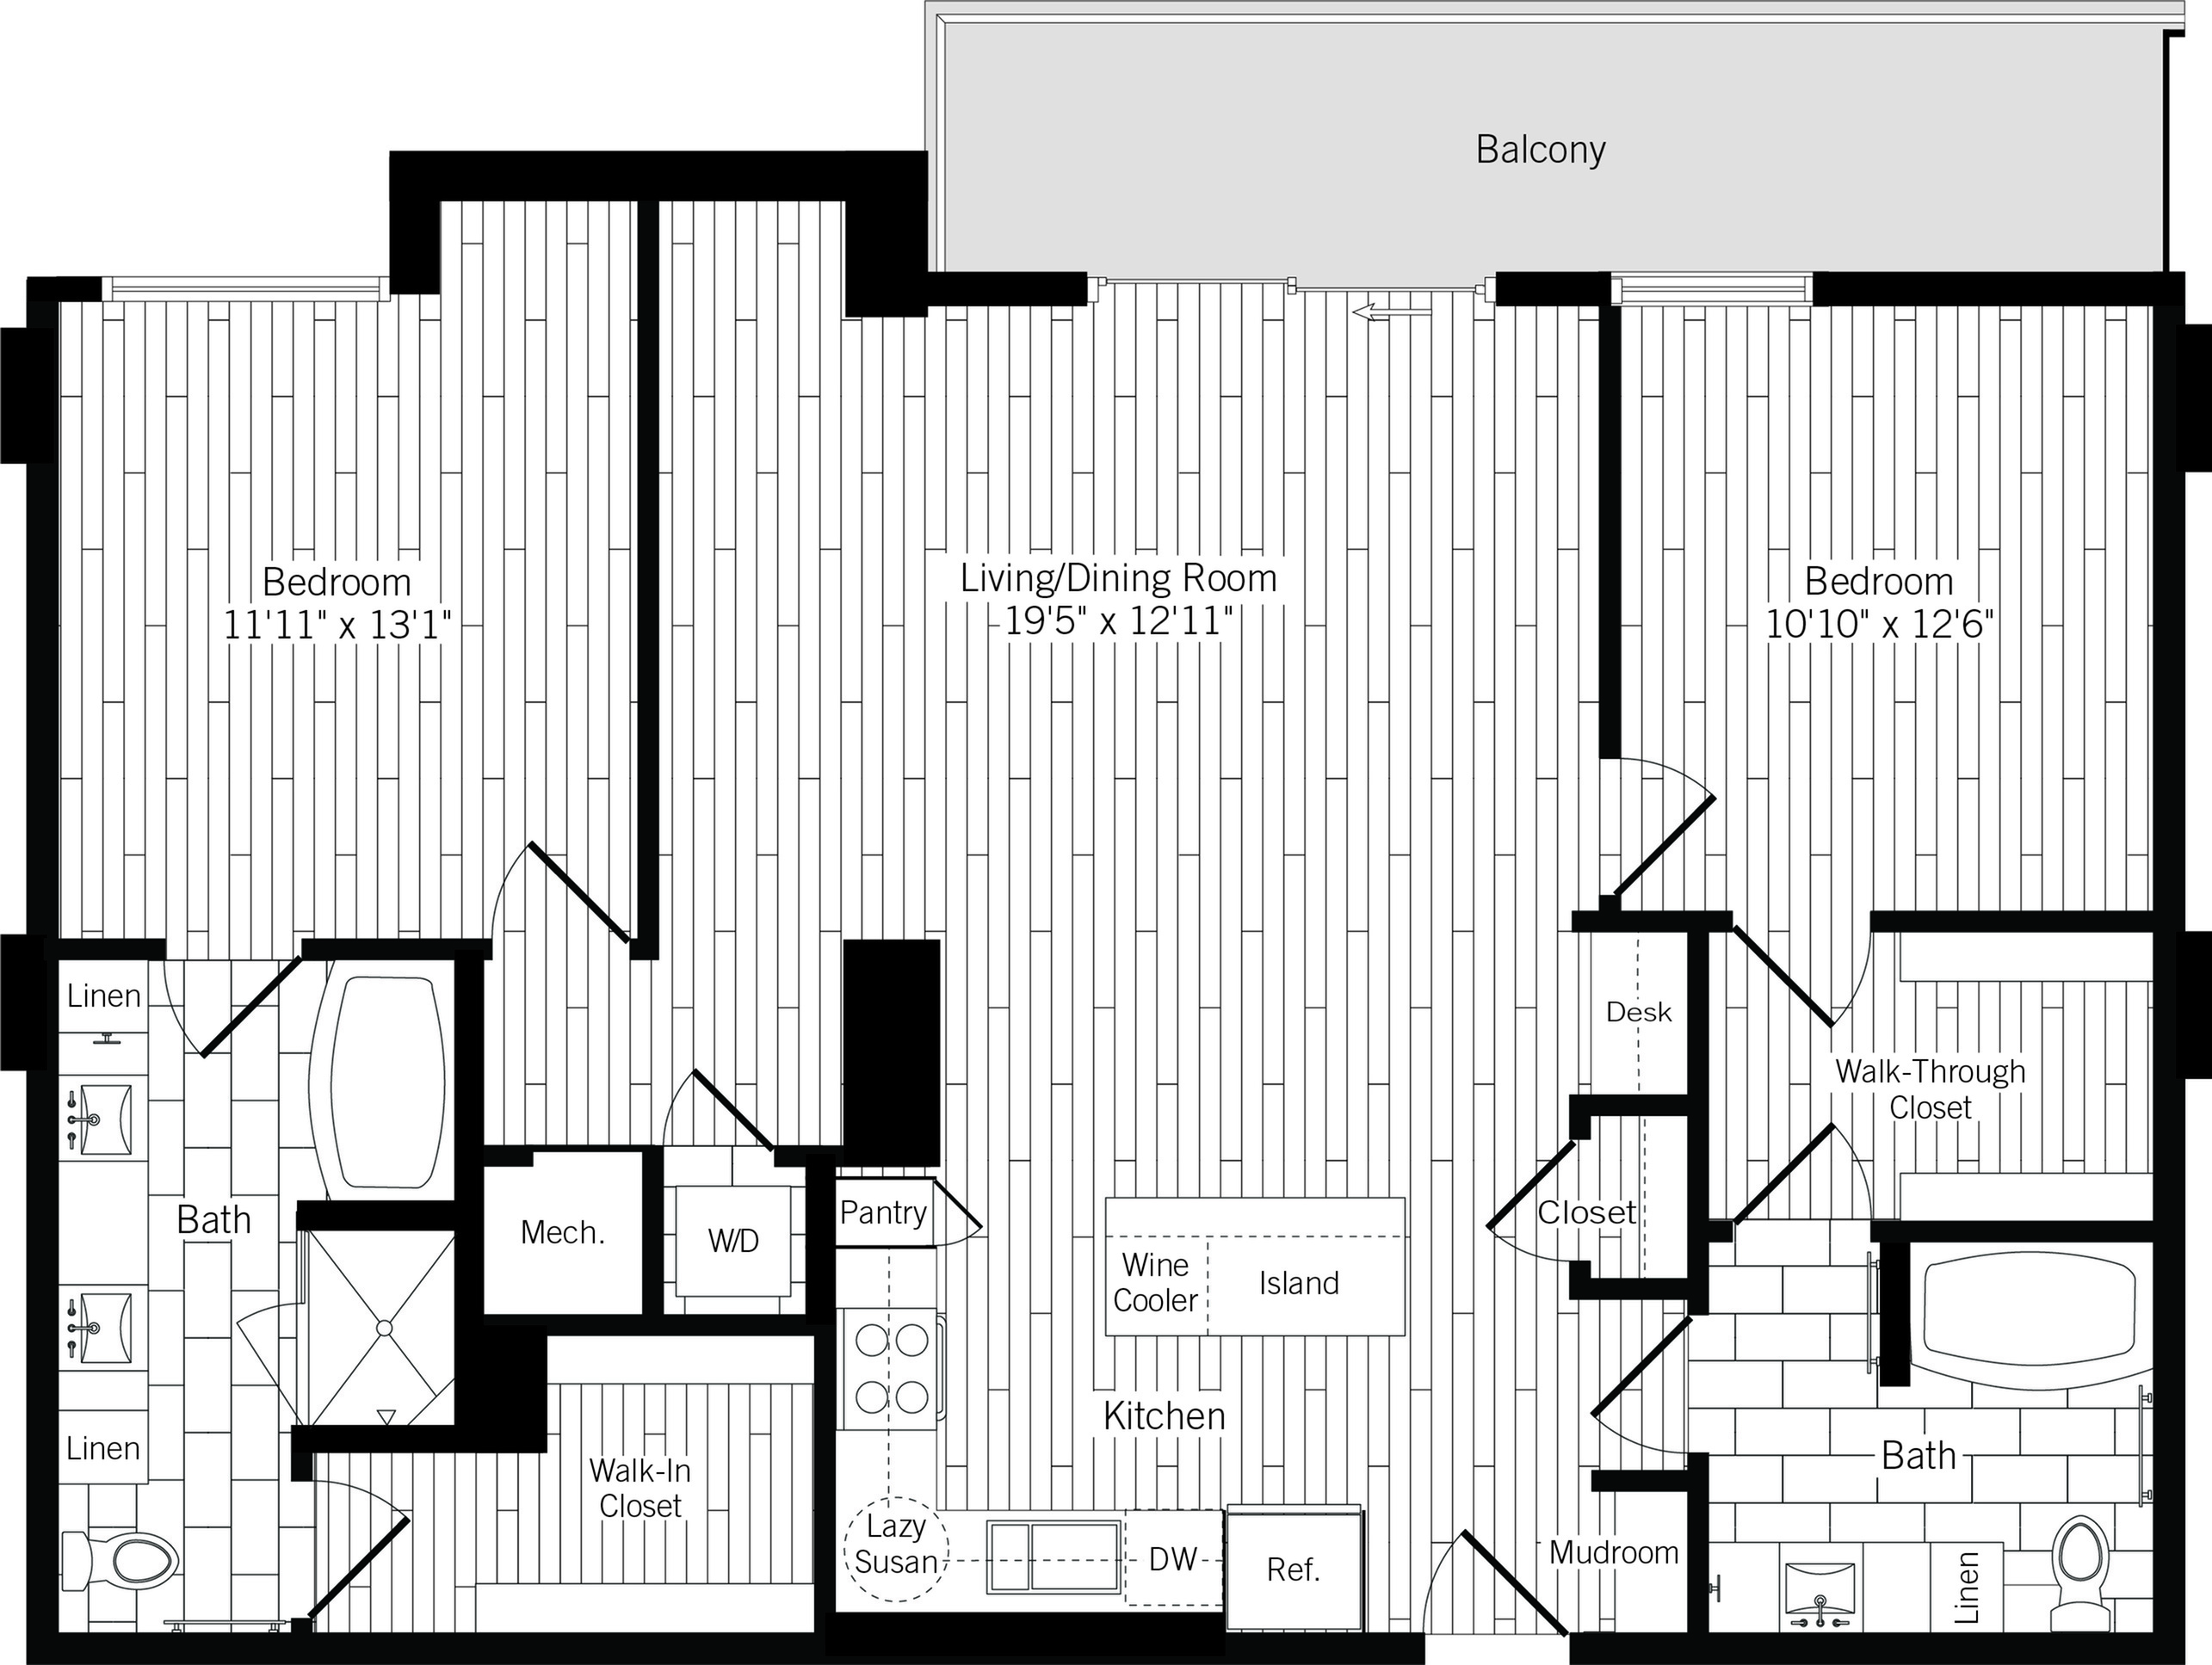 1296 square foot two bedroom two bath apartment floorplan image